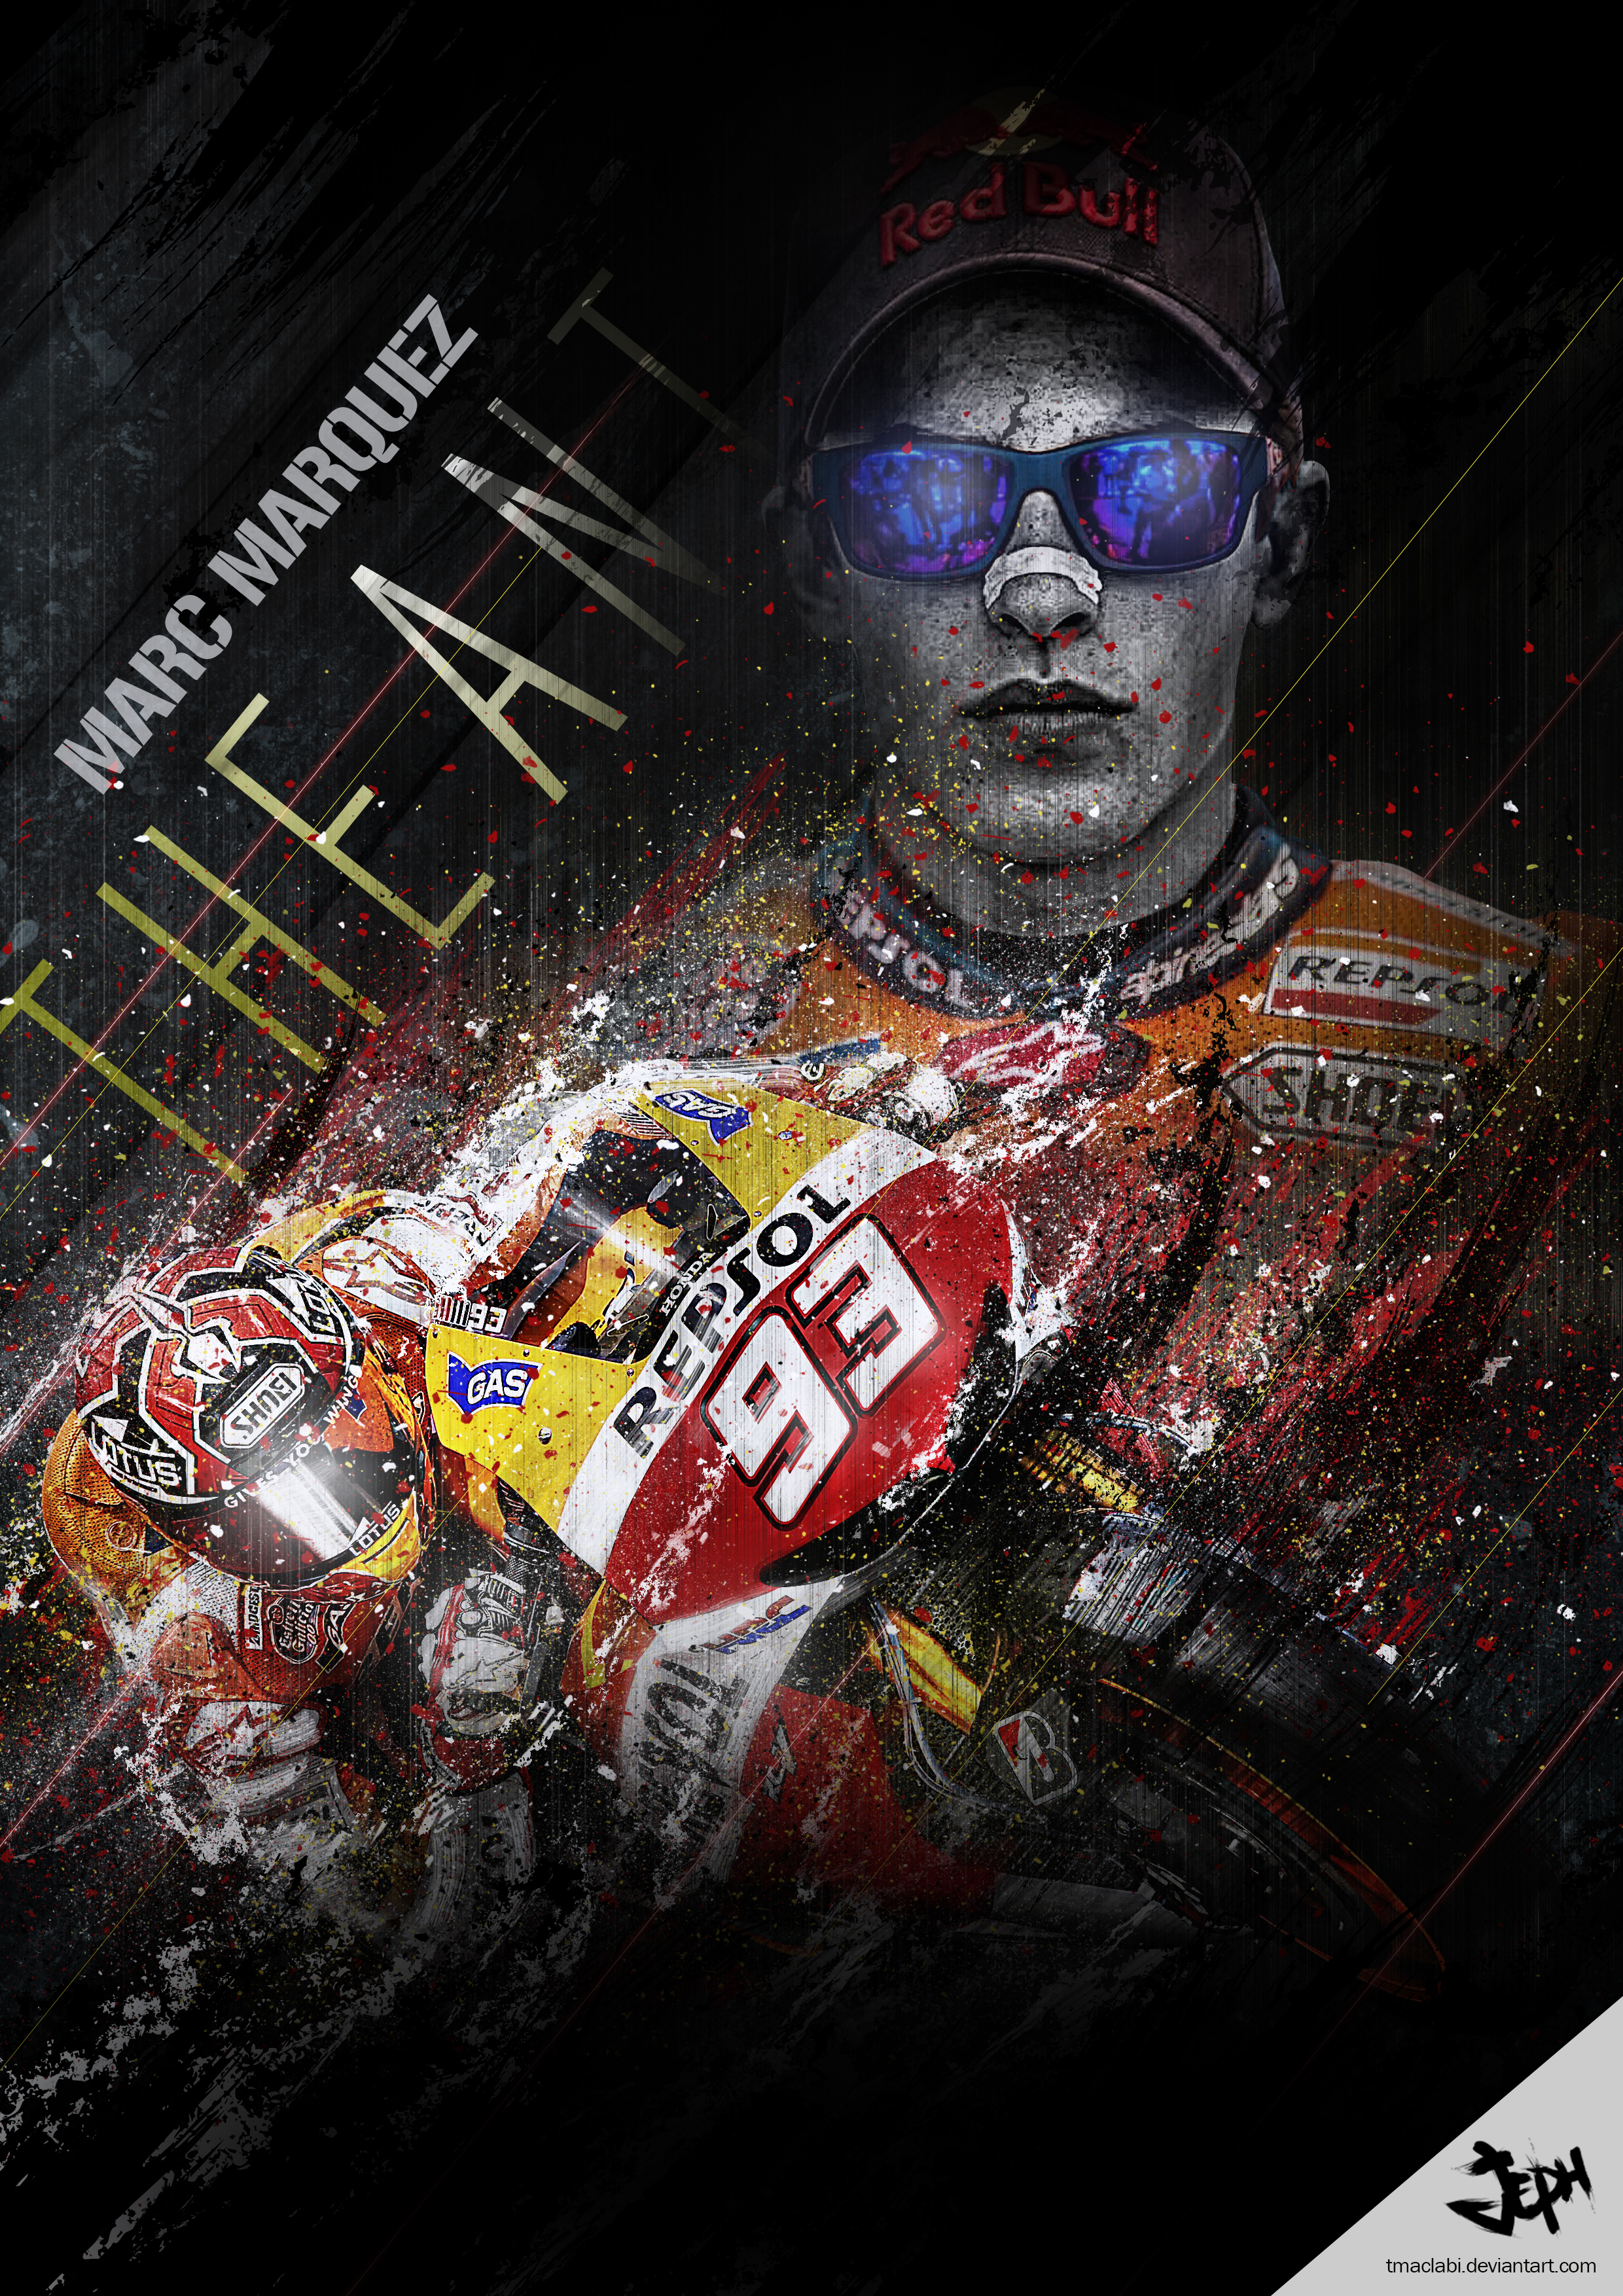 Marquez moto gp the ant by tmaclabi on deviantart marc marquez moto gp the ant by tmaclabi voltagebd Images